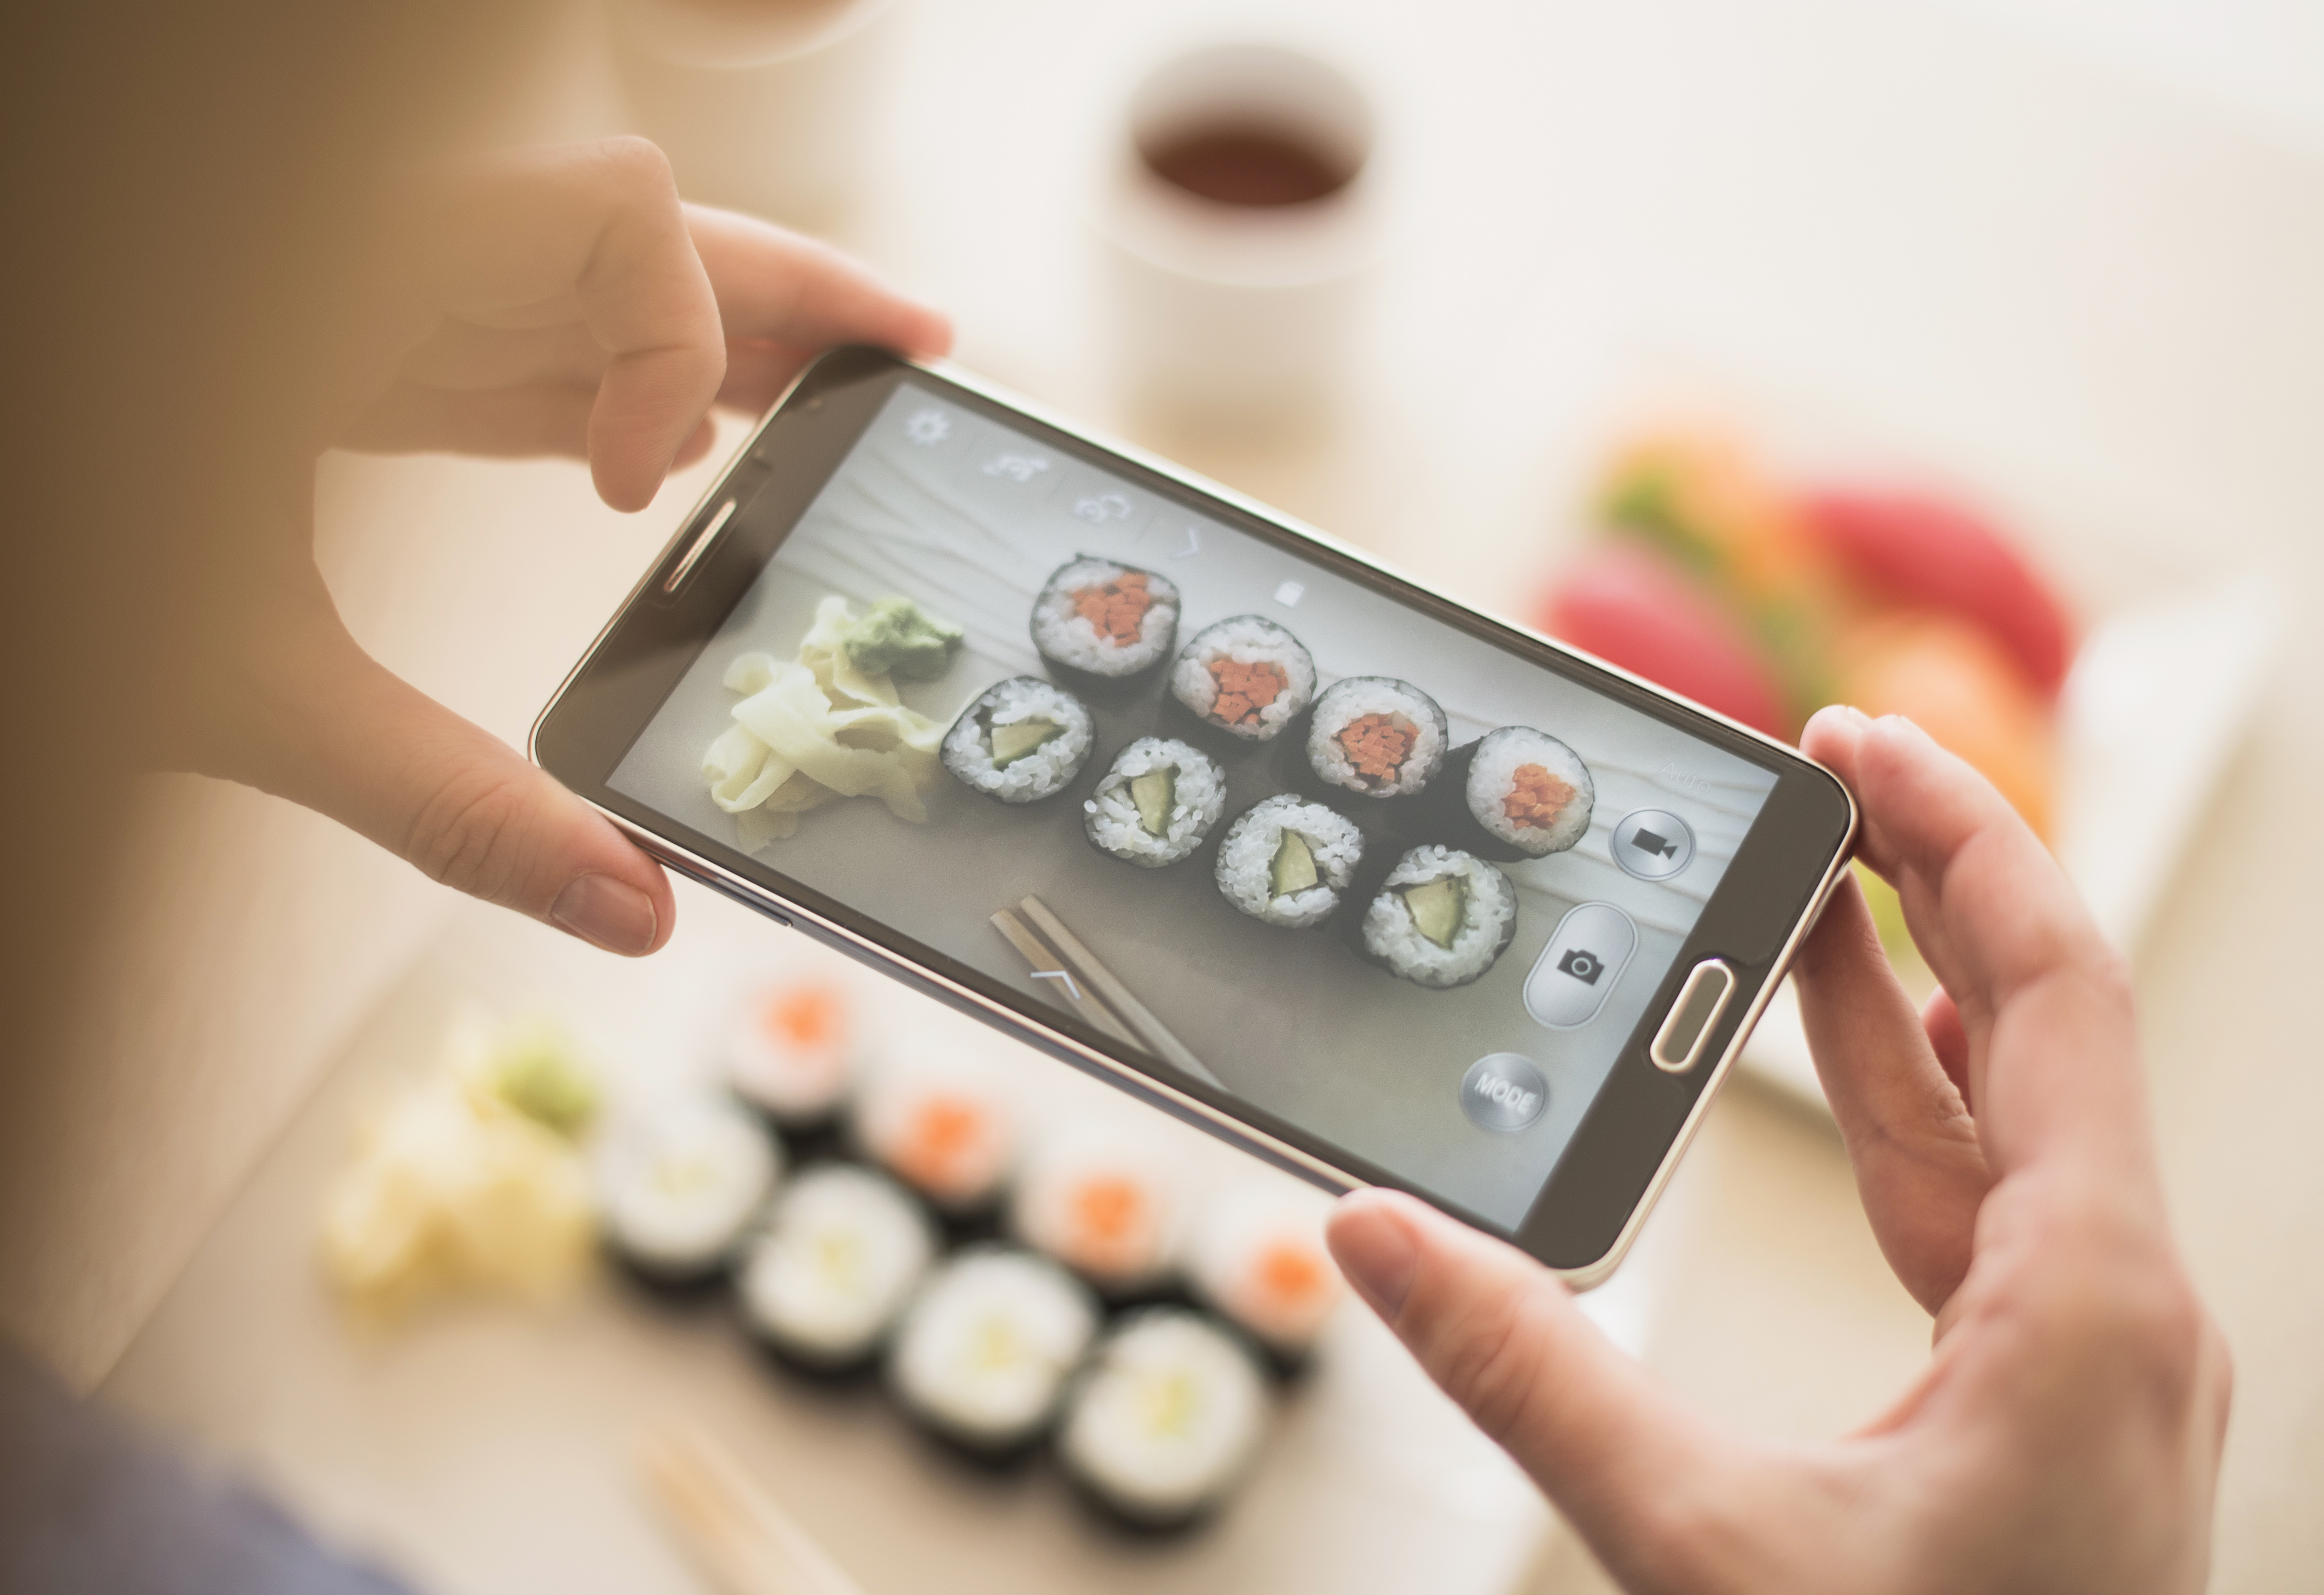 Culinary Schools Now Offer Food Photography Classes for Instagram